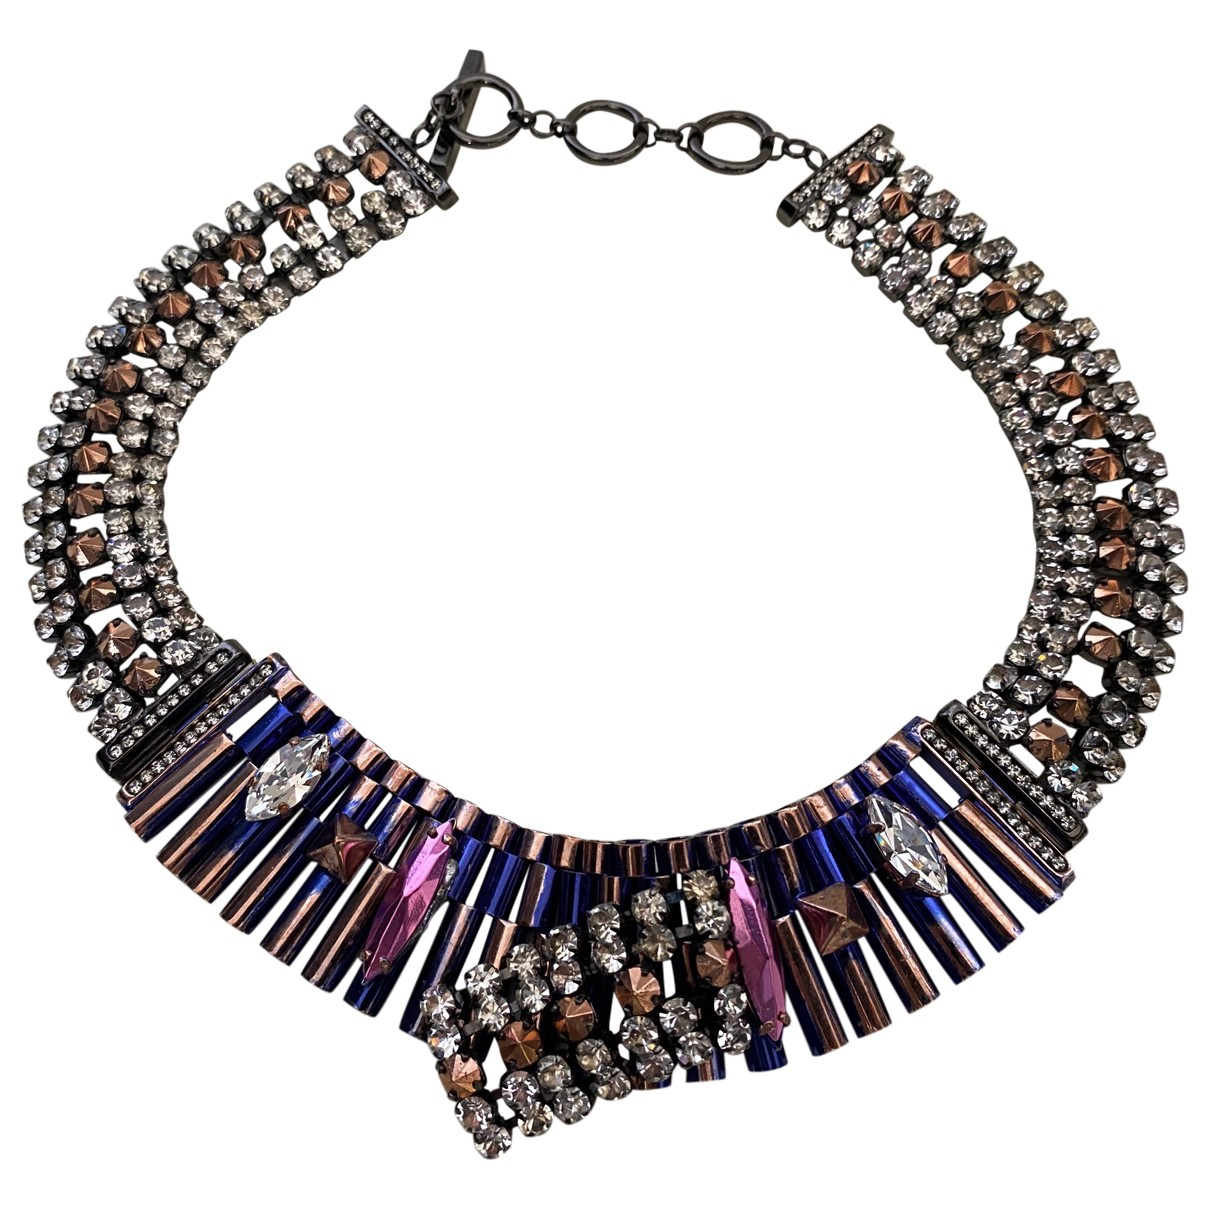 Iosselliani - Collier   pour femme en metal - multicolore